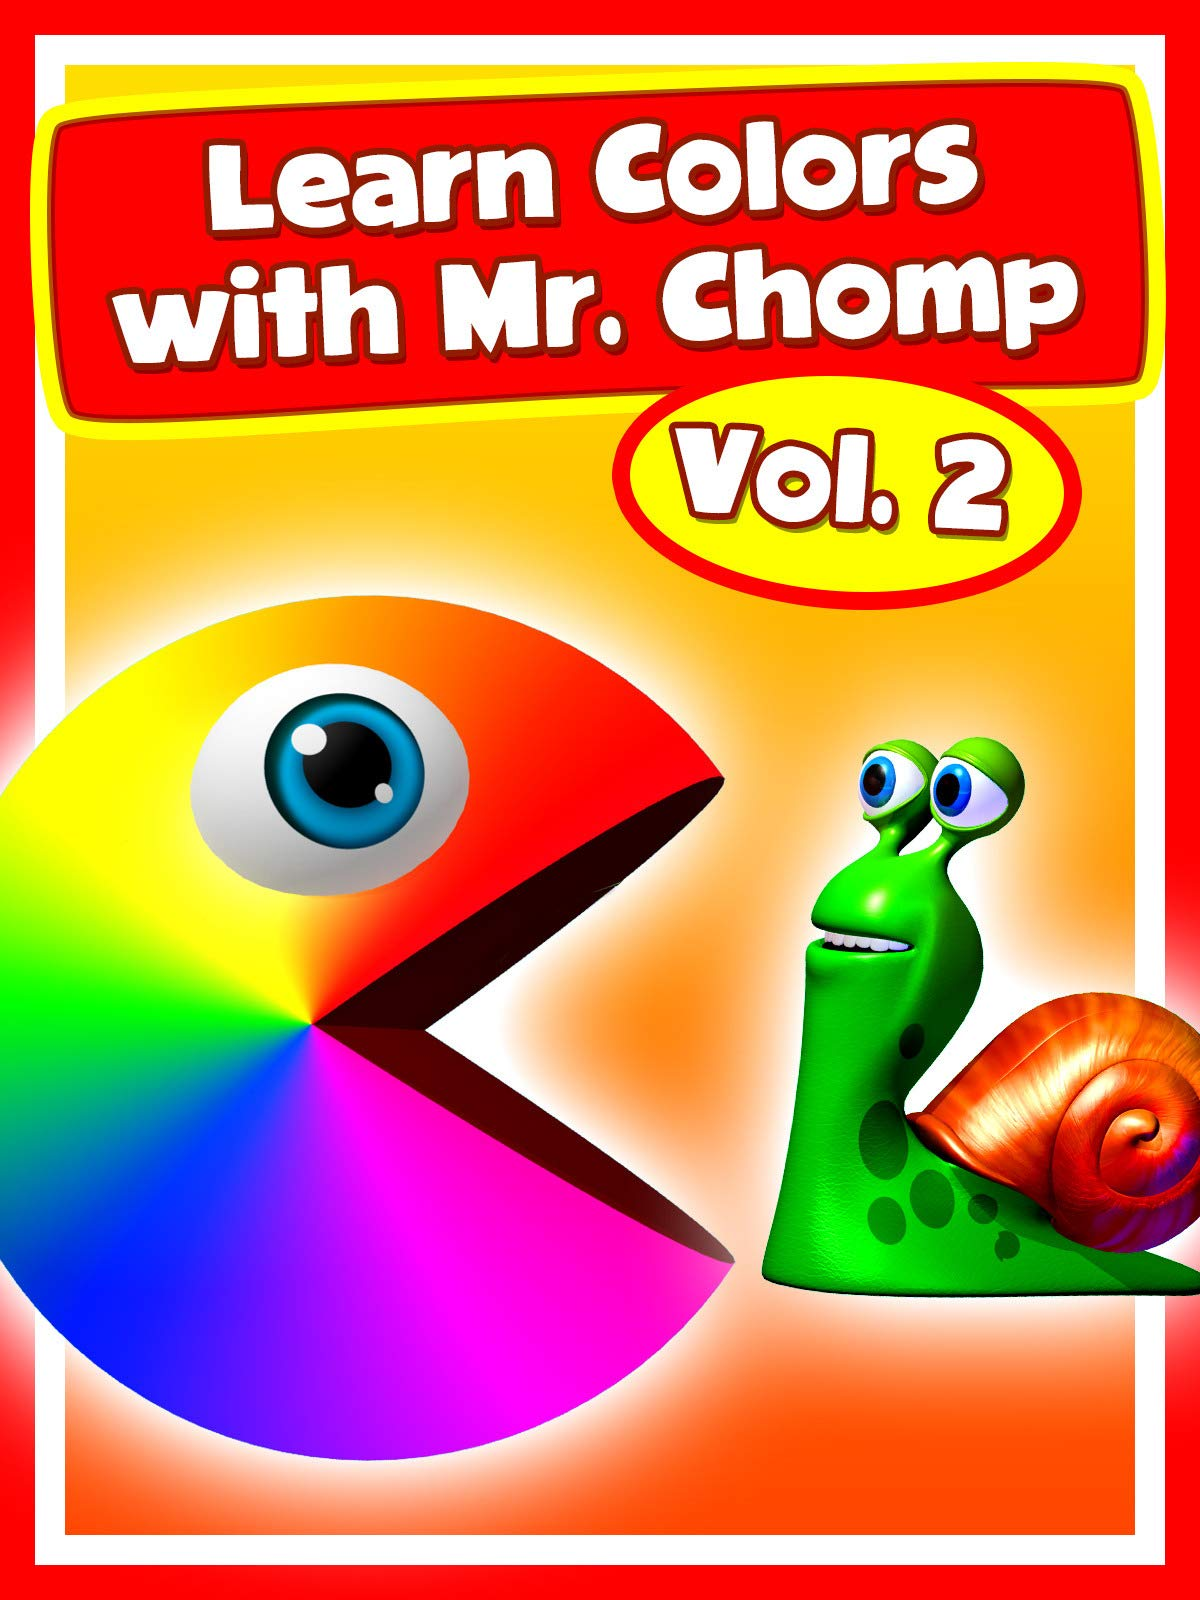 Learn Colors with Mr. Chomp Vol.2 on Amazon Prime Video UK